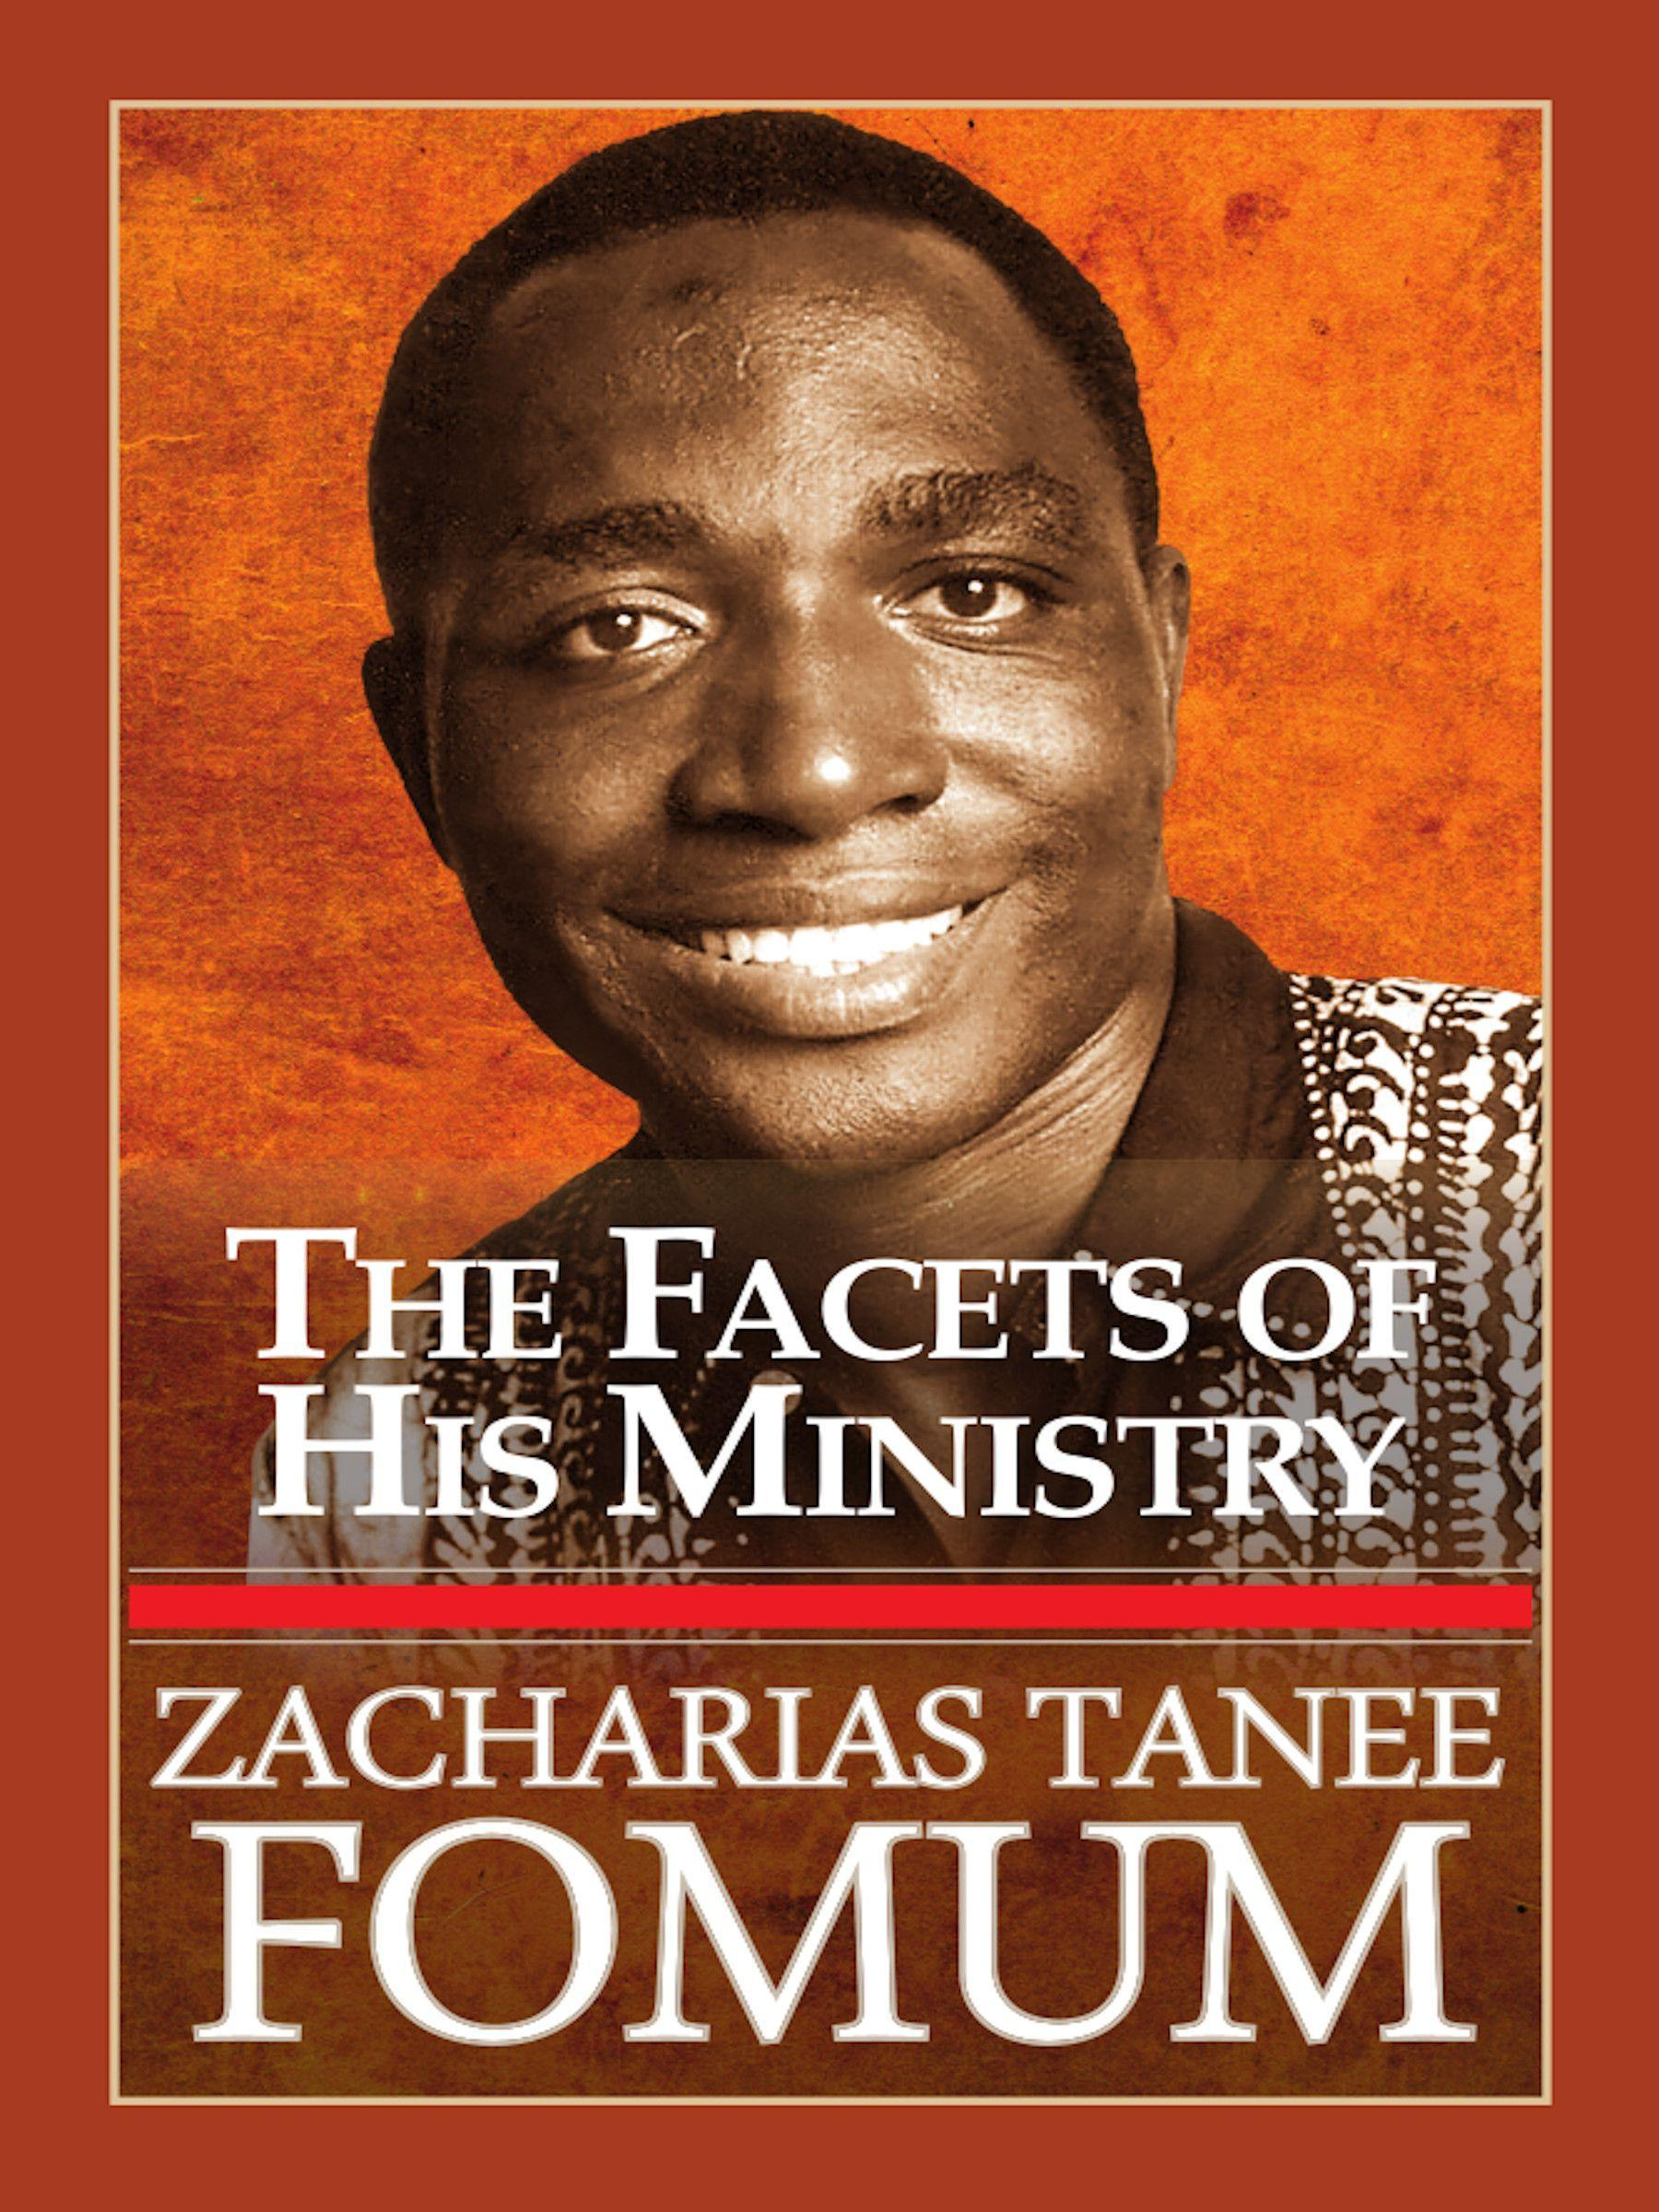 The Facets of His Ministry